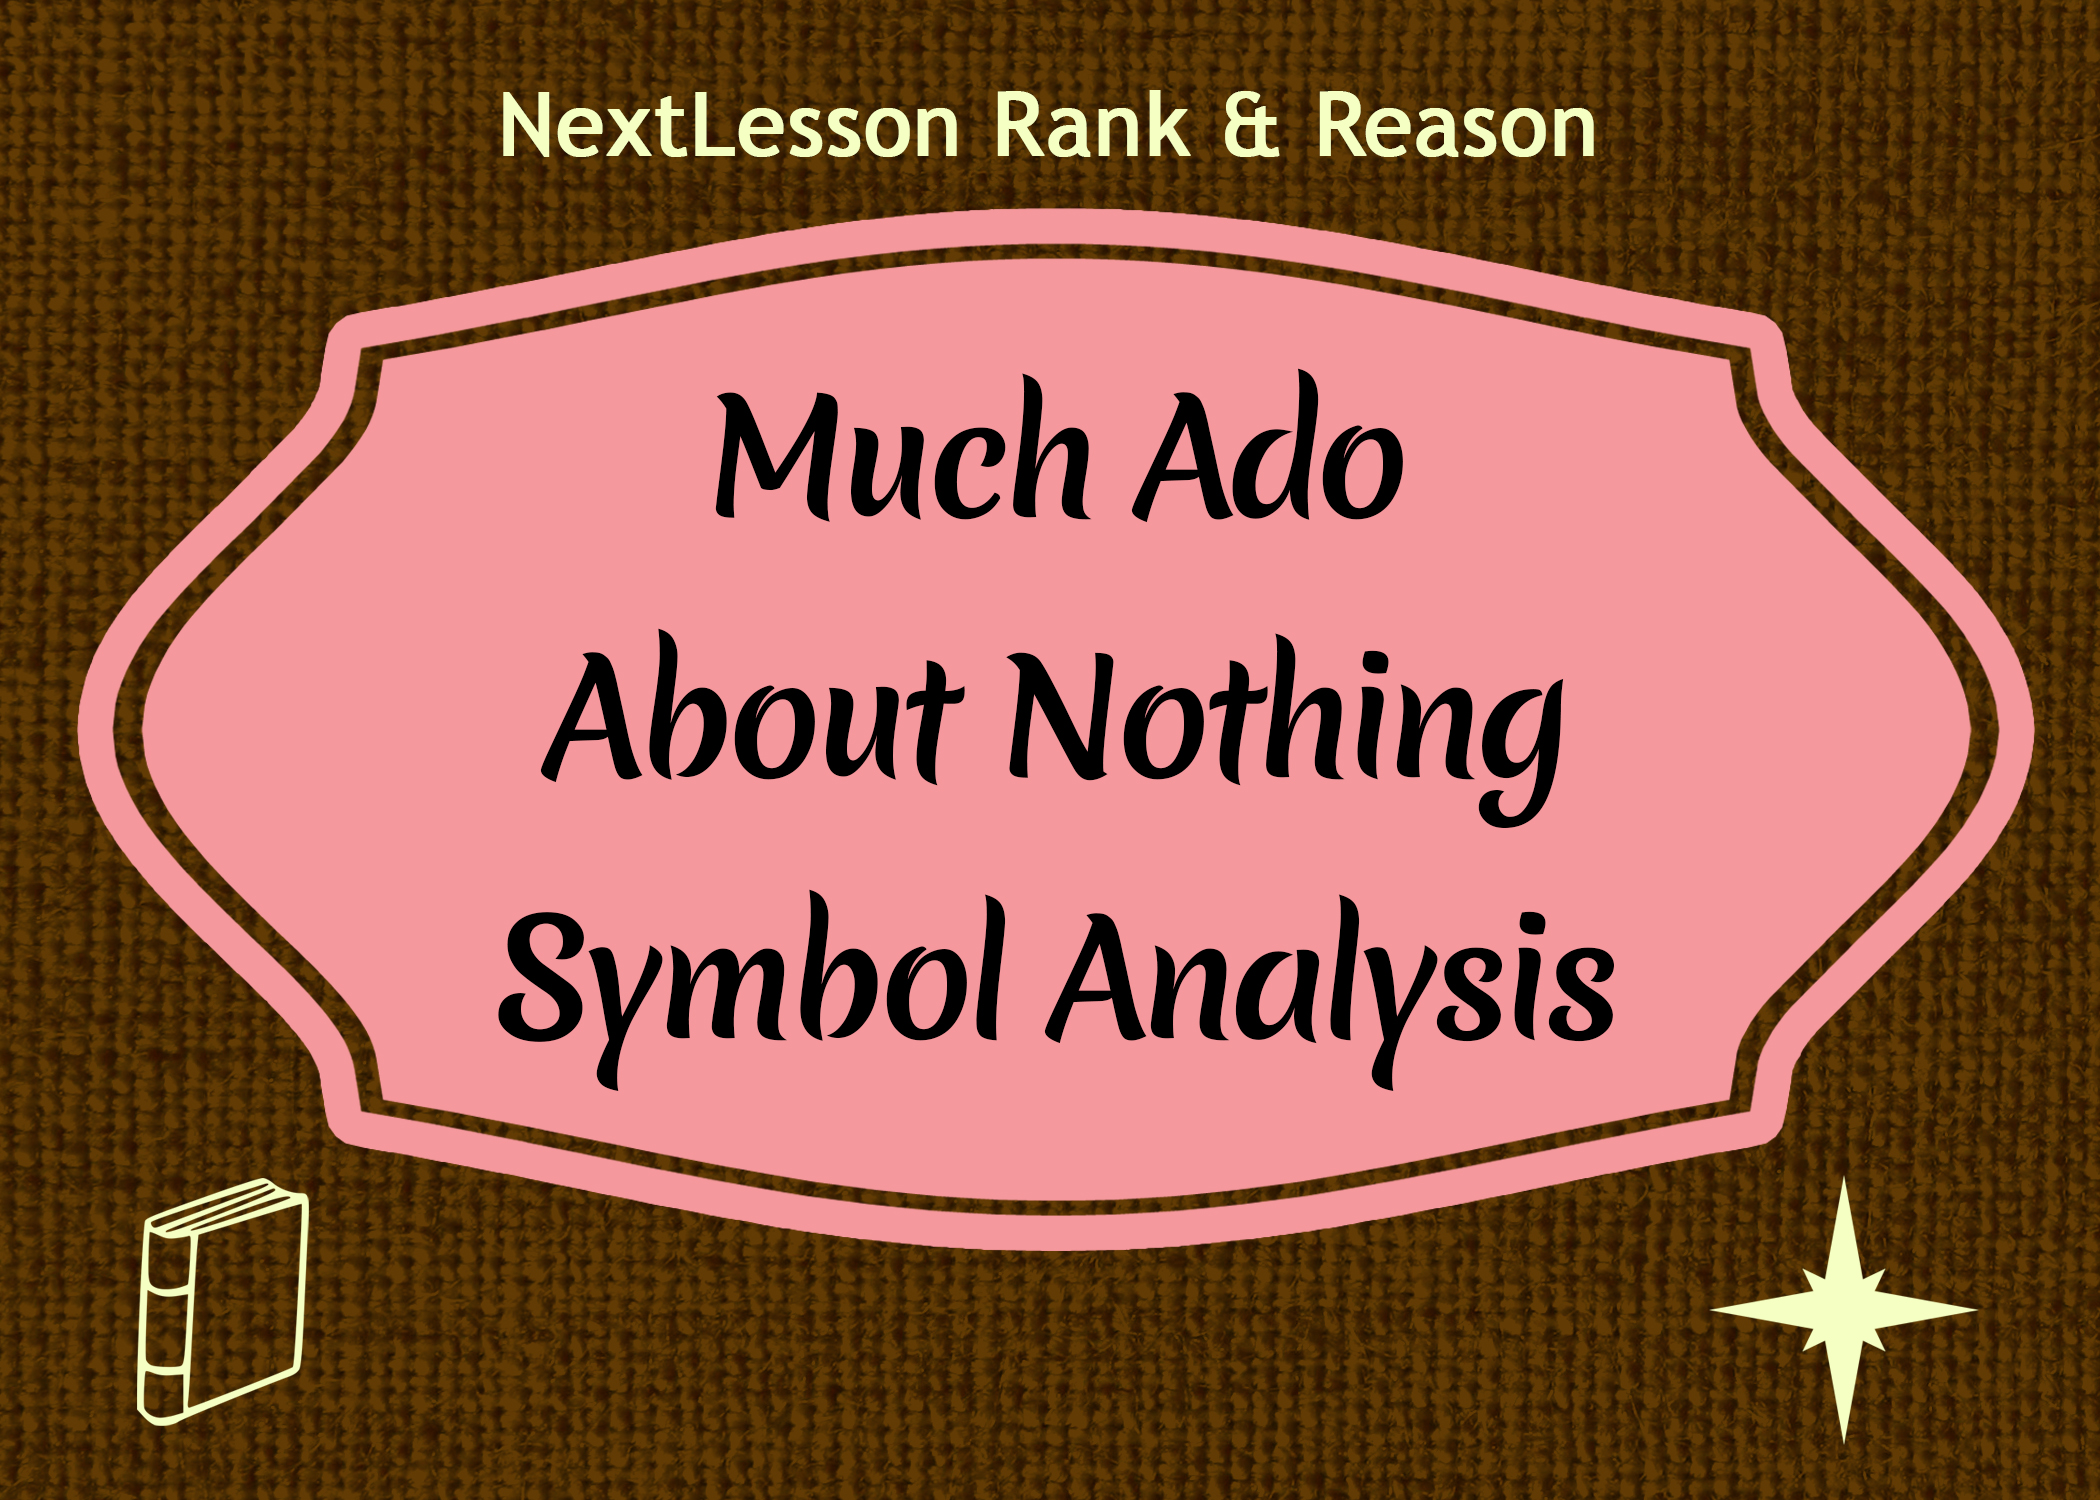 essay notes on much ado about nothing Student help on shakespeare's much ado about nothing  essays, articles, and book excerpts on shakespeare's much ado about nothing the wit of beatrice and benedick.